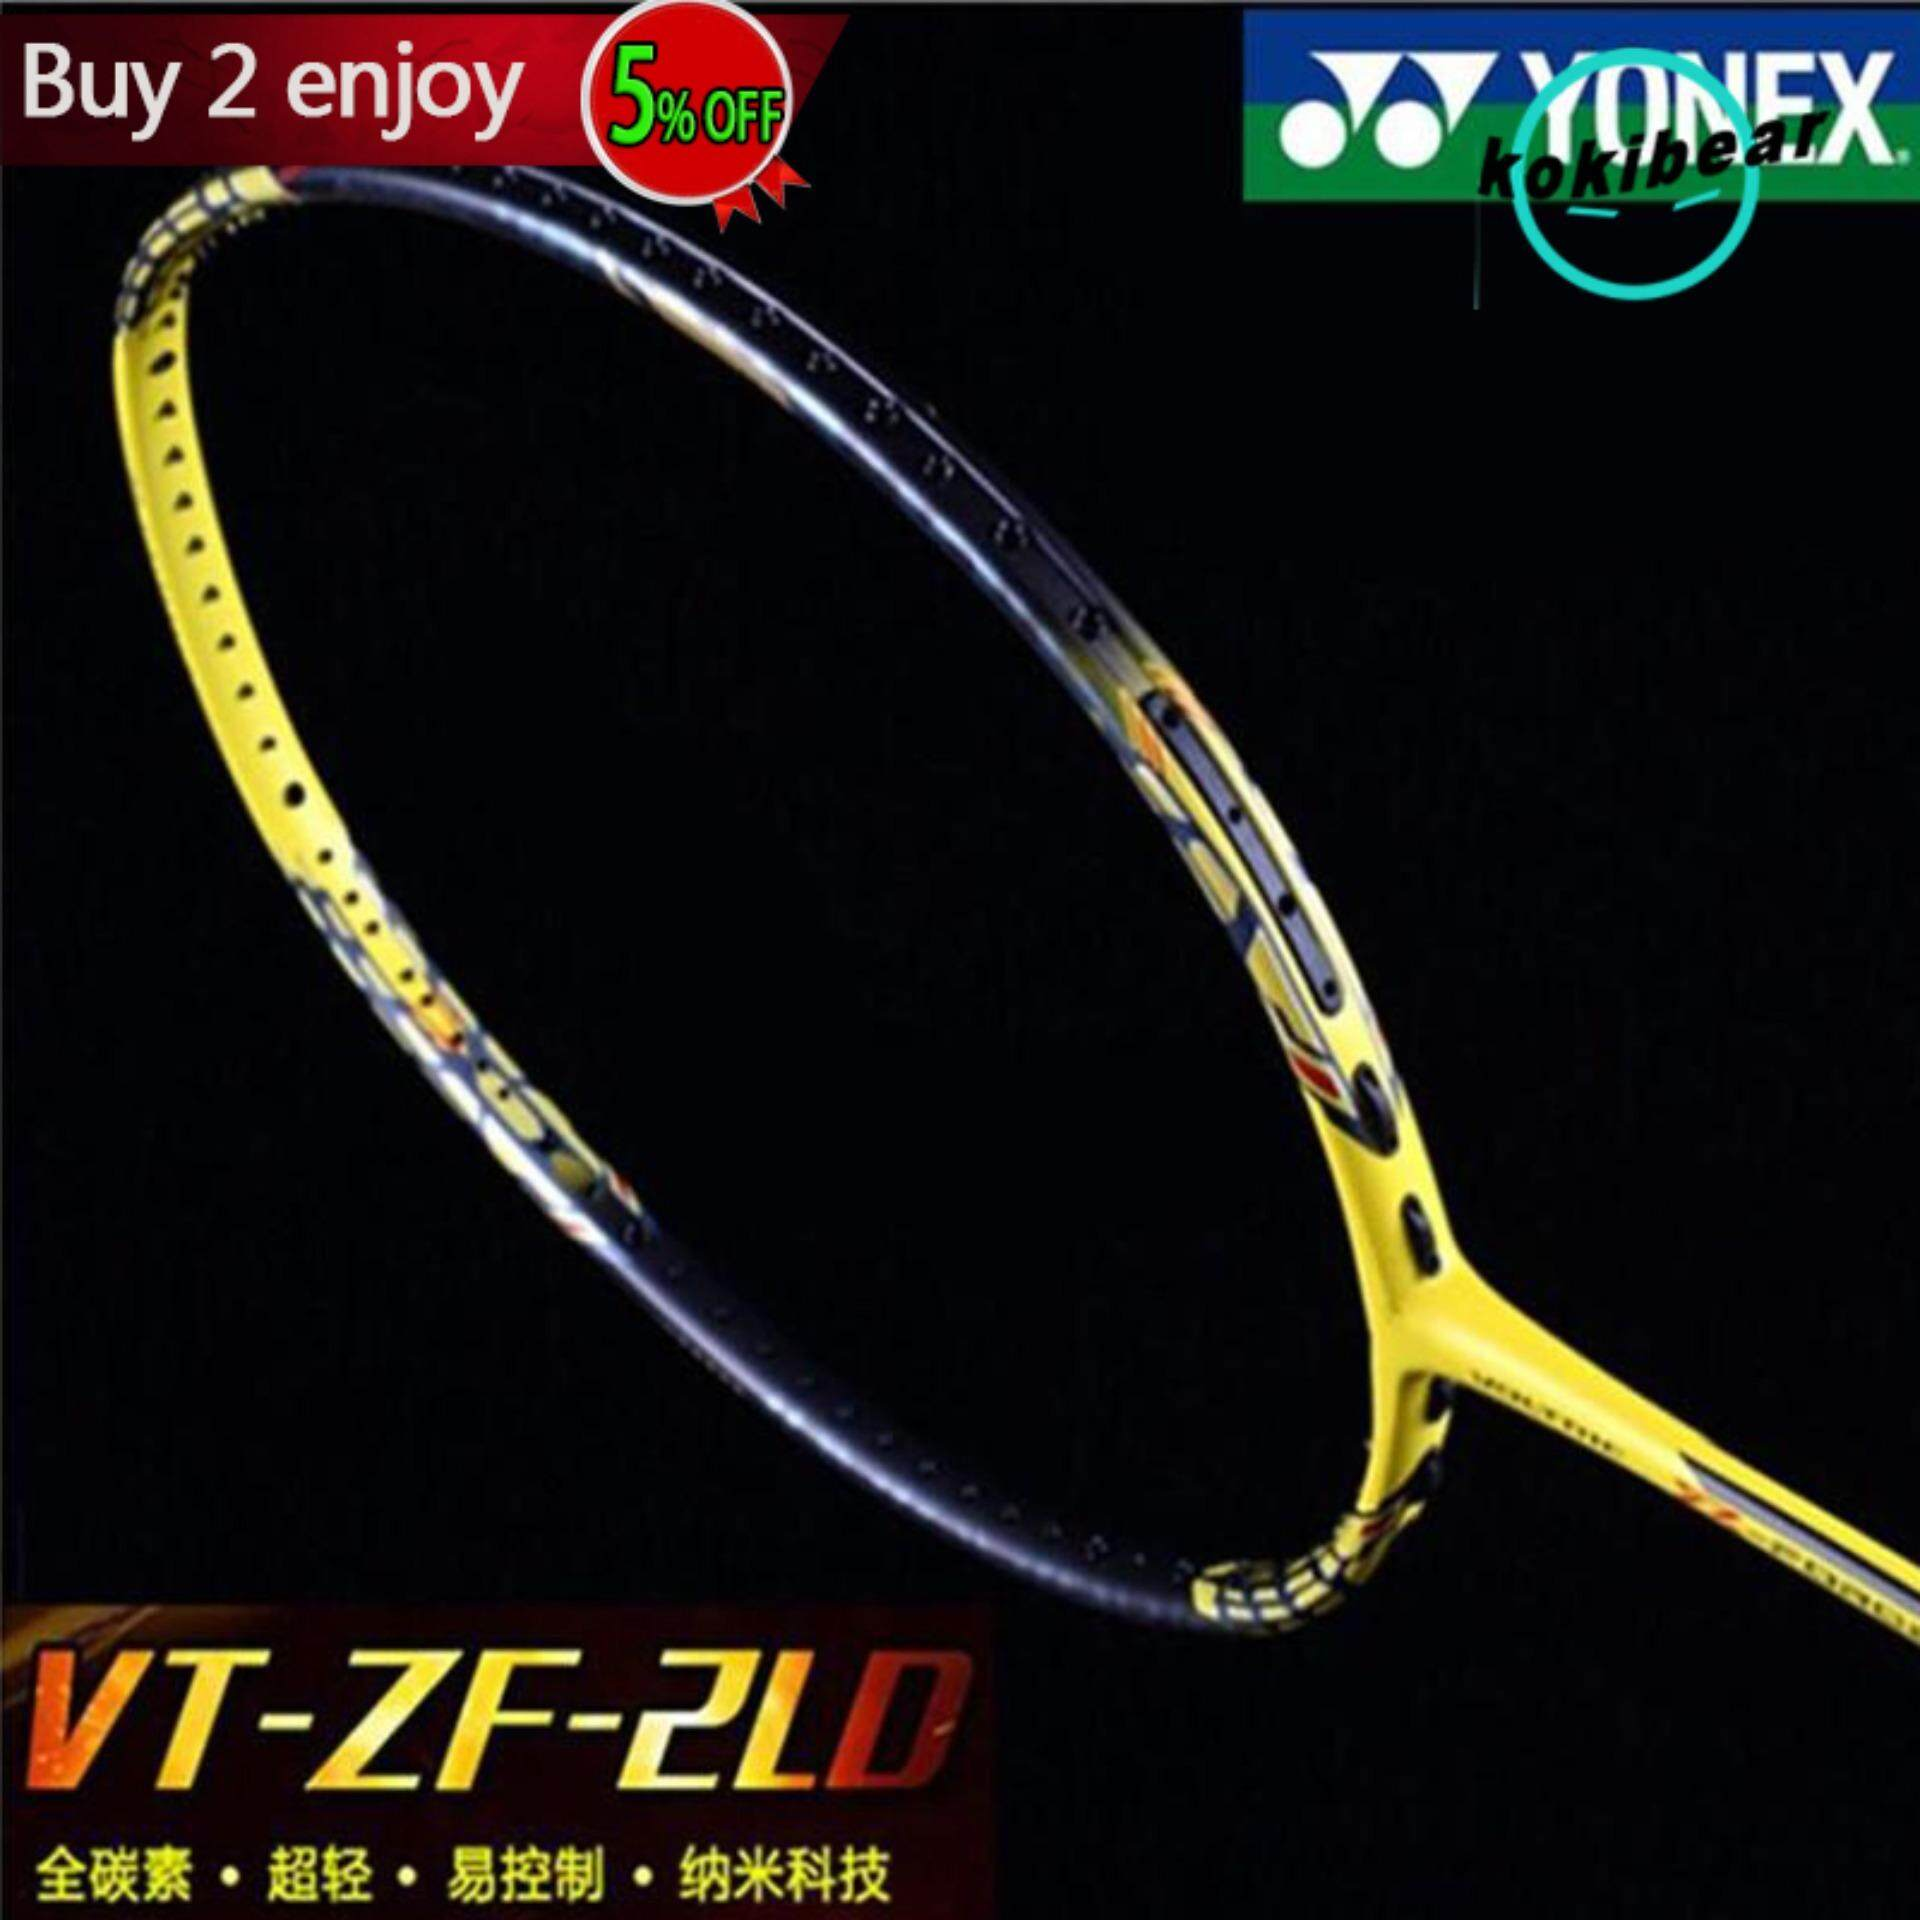 (Free String Service) YONEX VTZF-2LD Full Carbon Single Badminton Racket with Even Nails 24Lbs Suitable